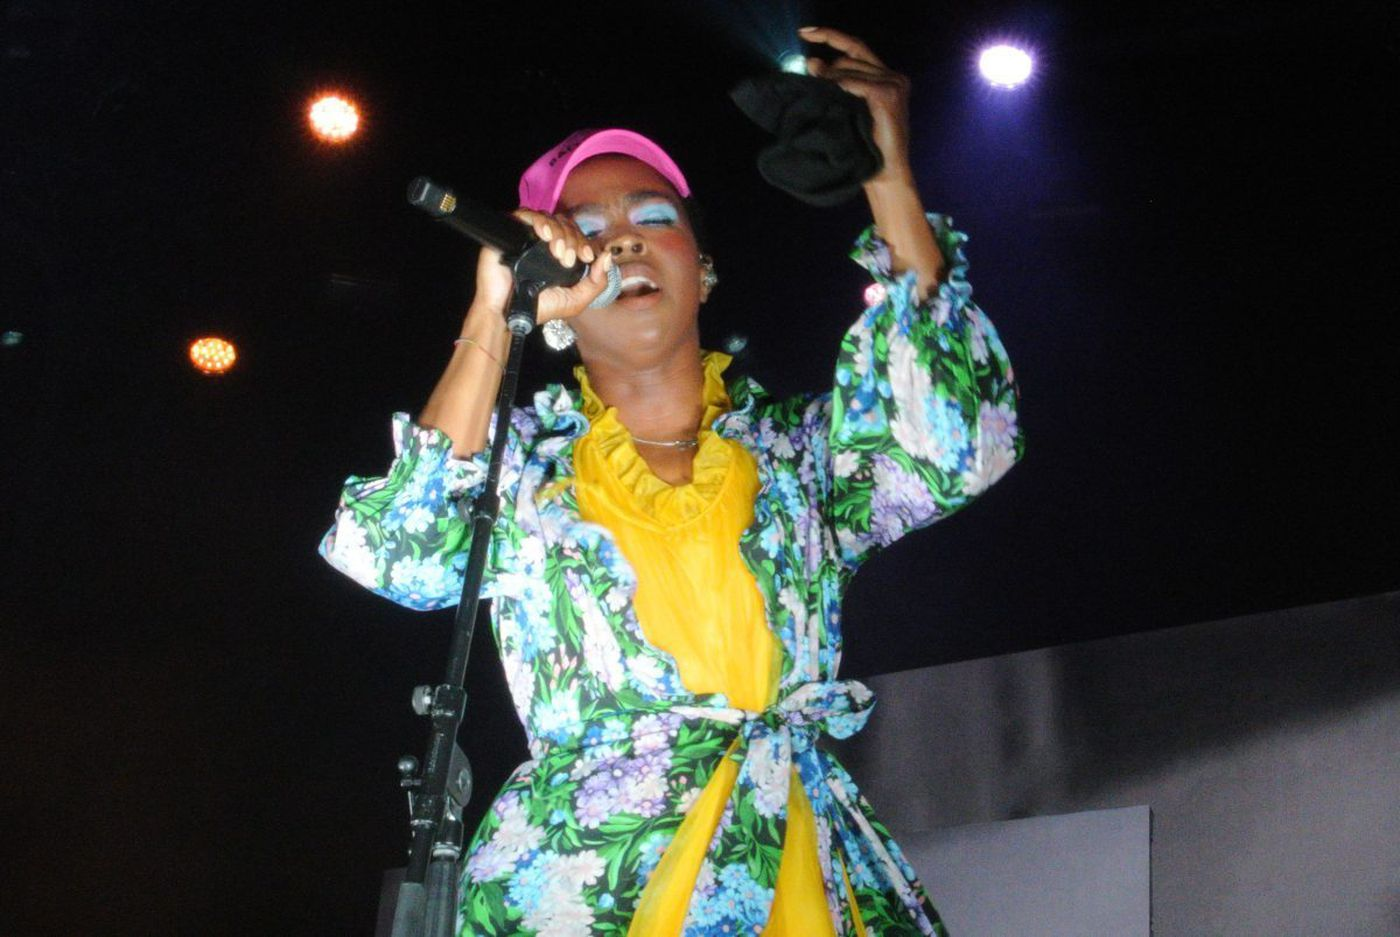 Lauryn Hill celebrates 20th anniversary of debut album with soulful Festival Pier performance